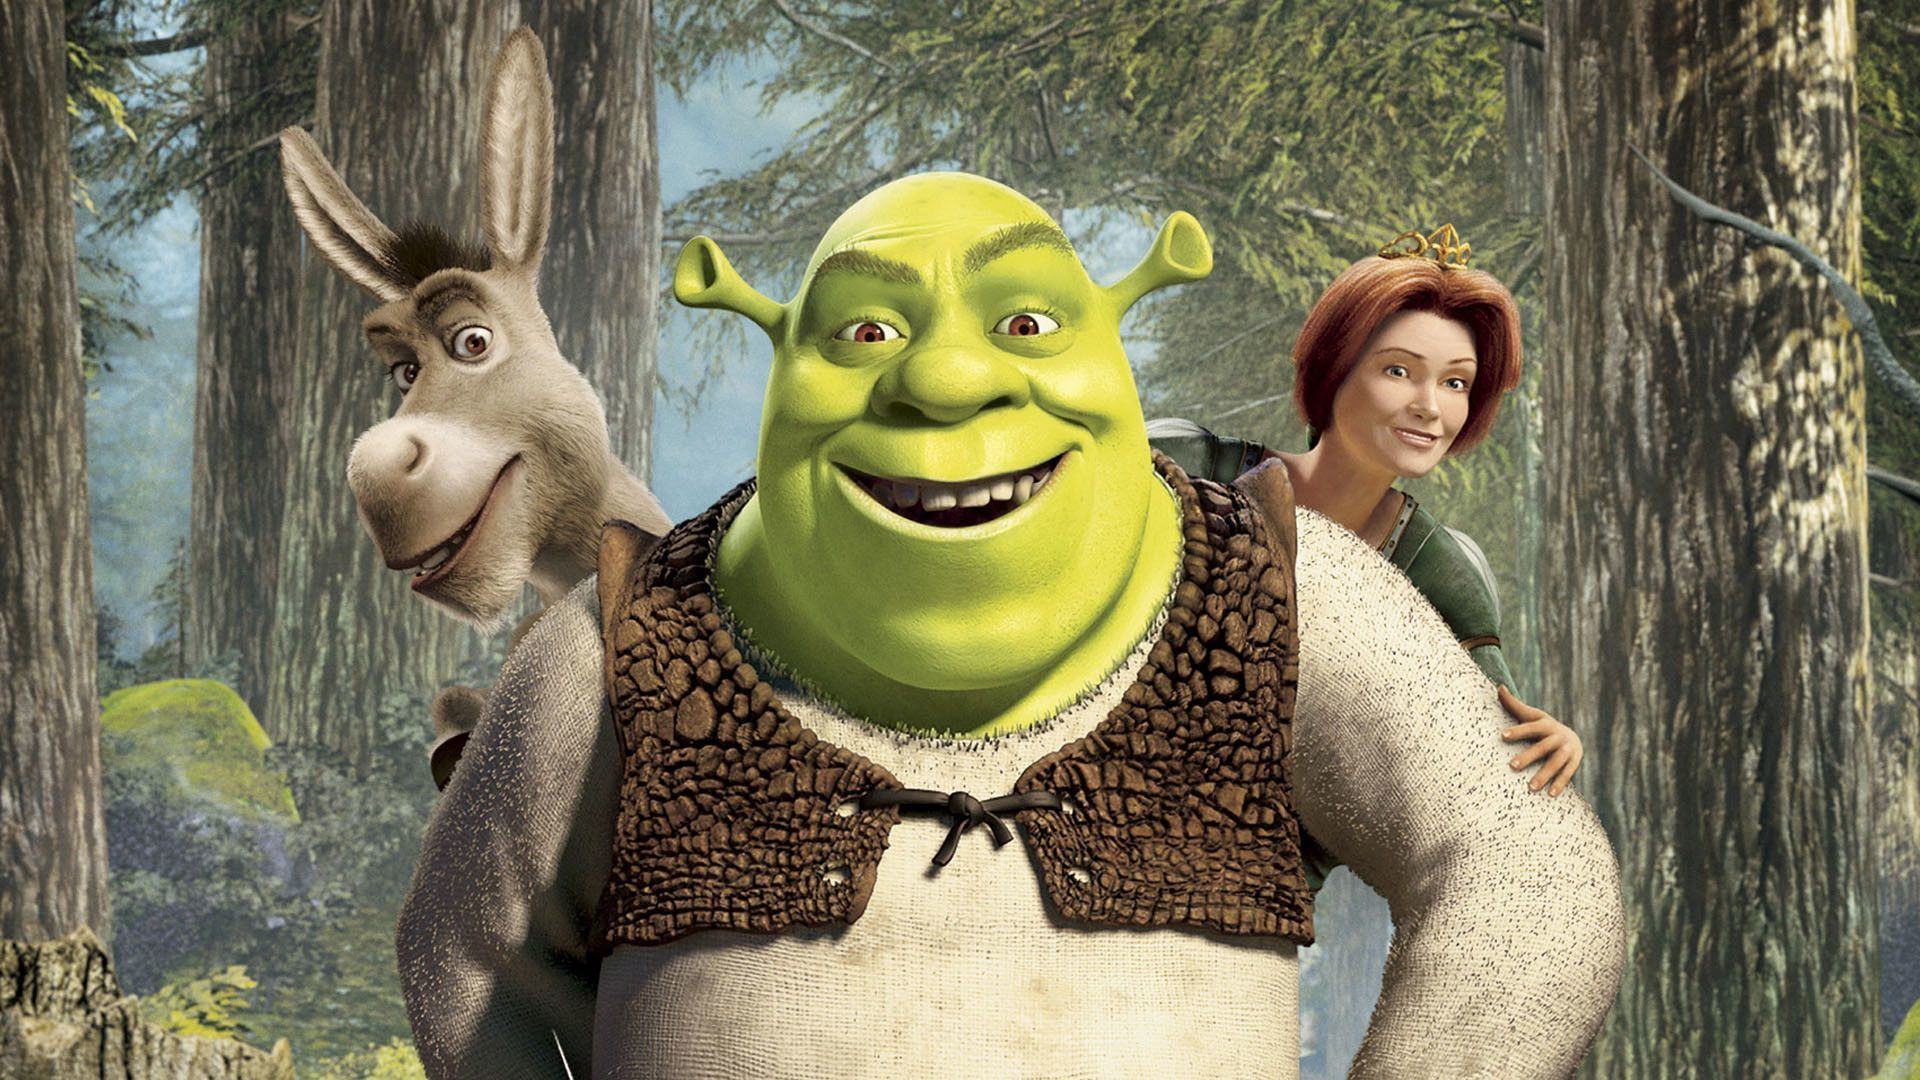 Shrek 5 Release Date announced, Production and Filming for Shrek Reboot to Start Soon